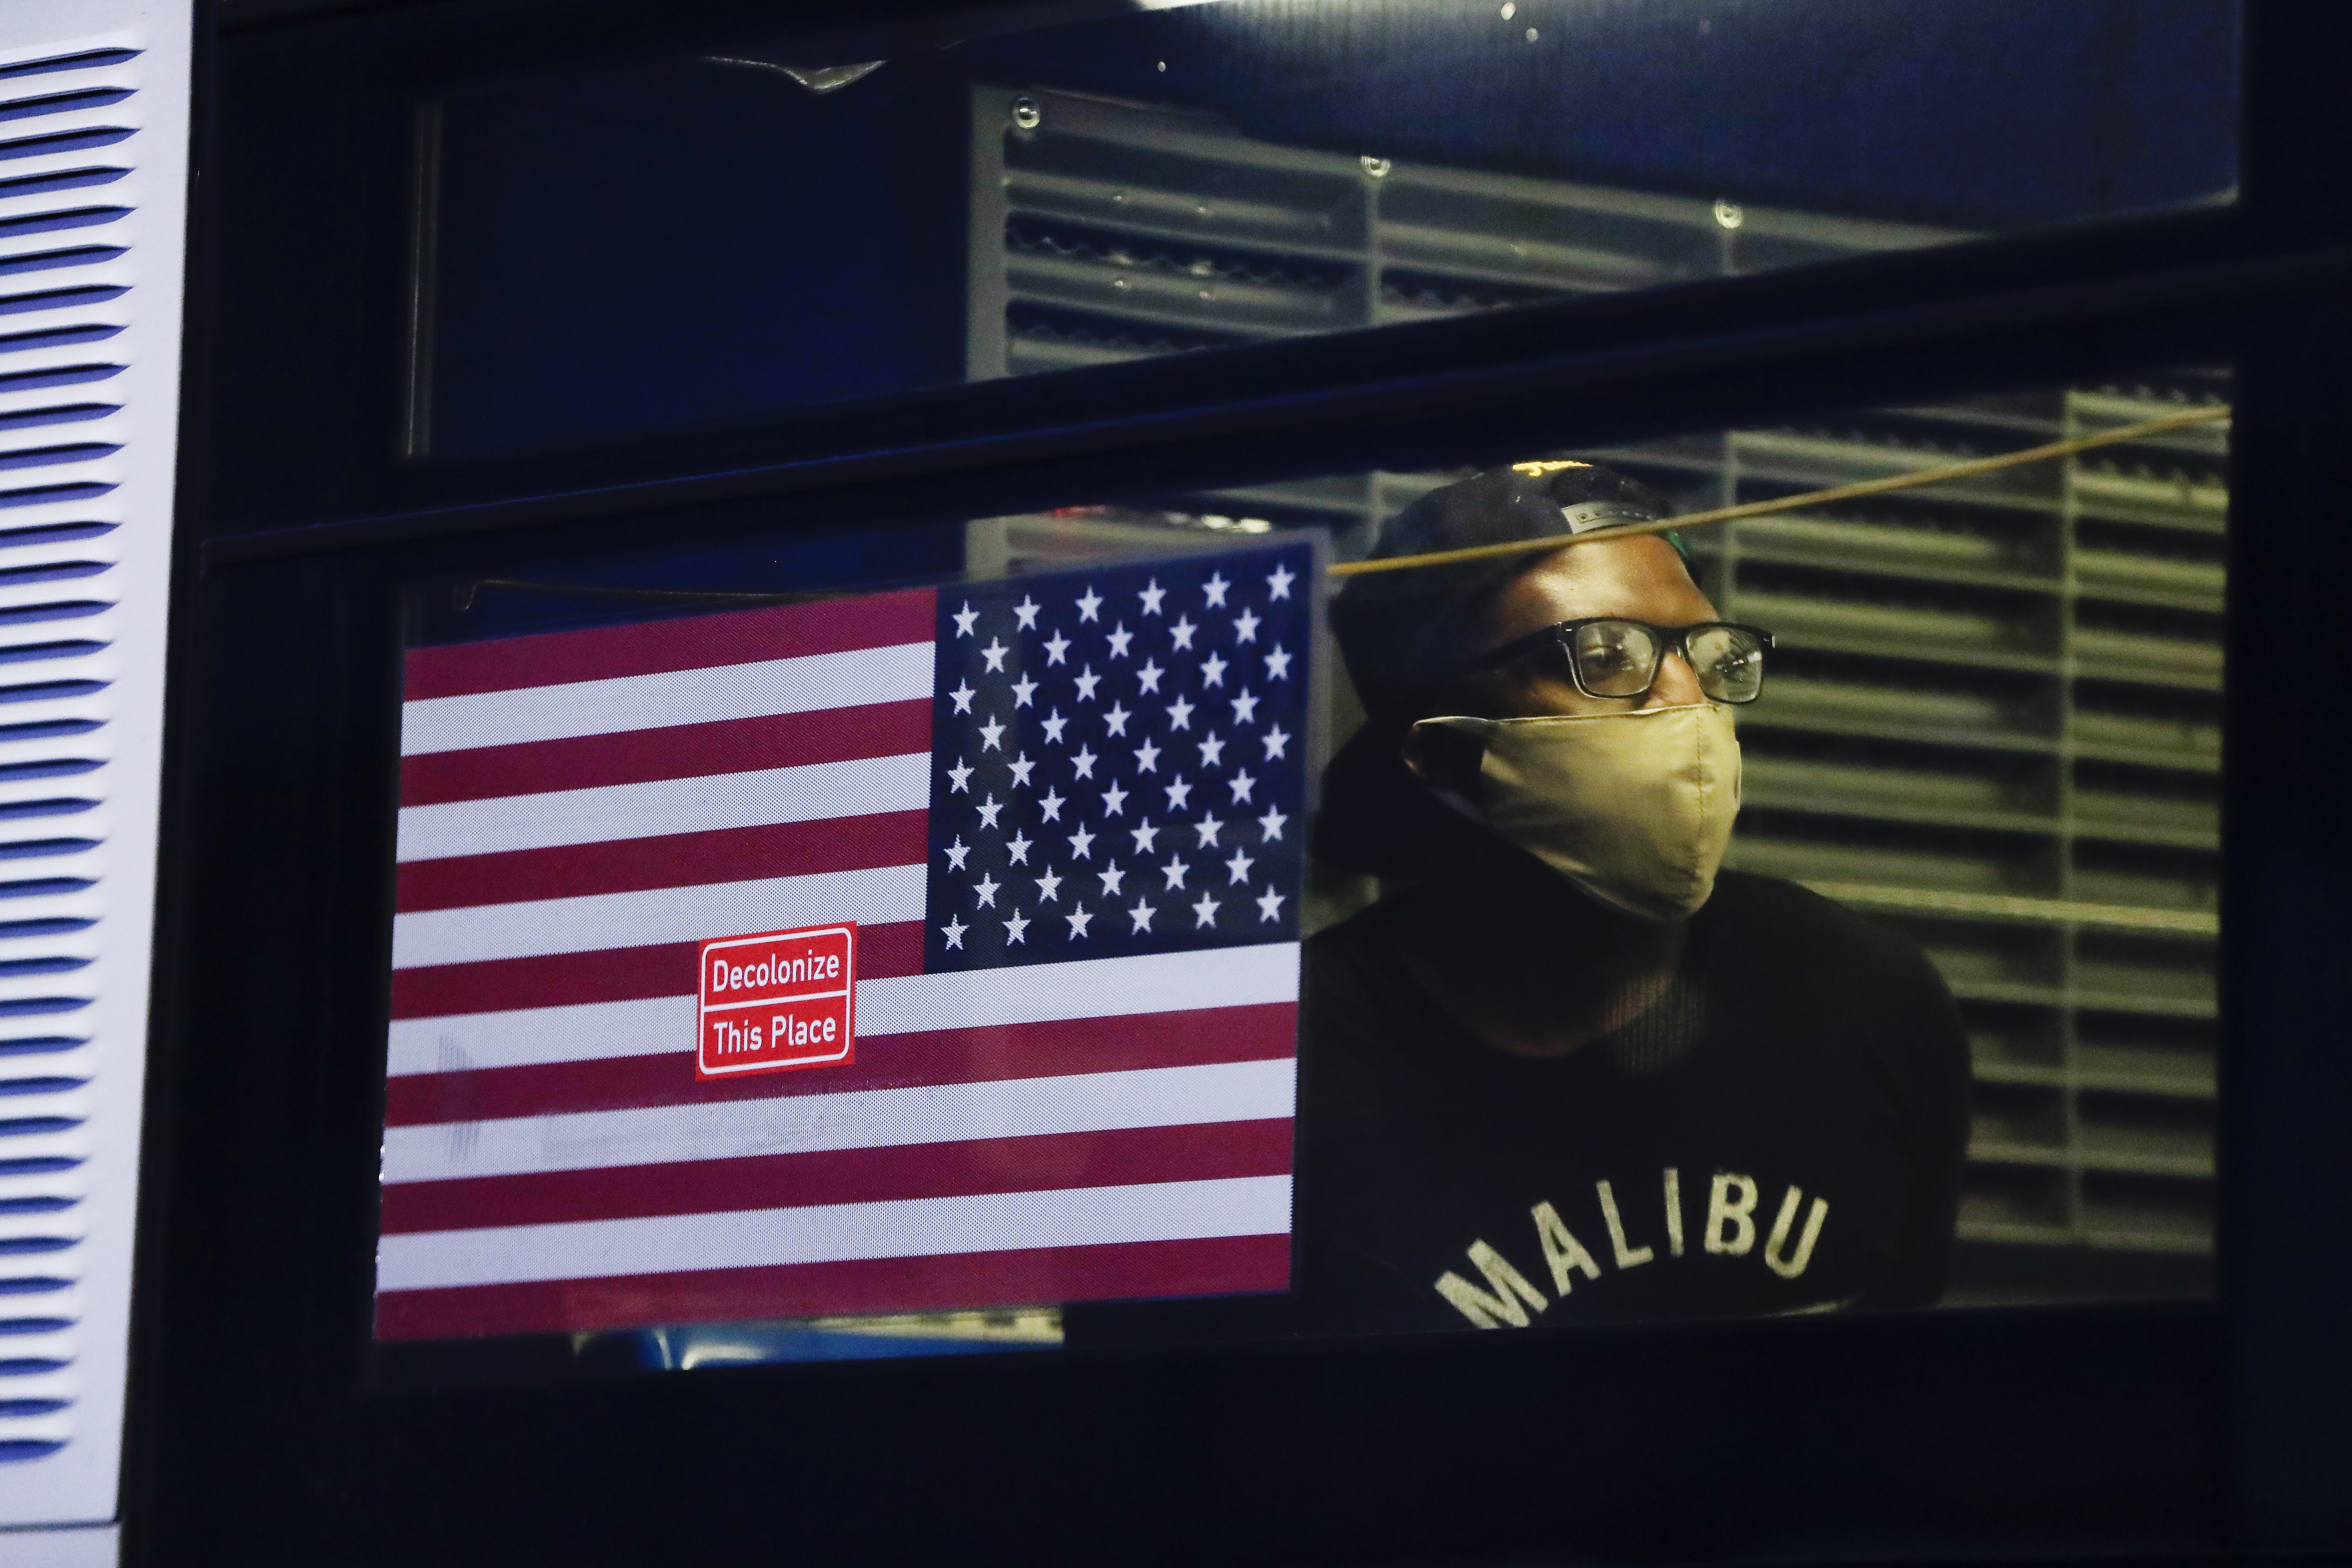 A protester who was arrested waits in the back of a bus during a rally at the Barclays Center over the death of George Floyd, a…